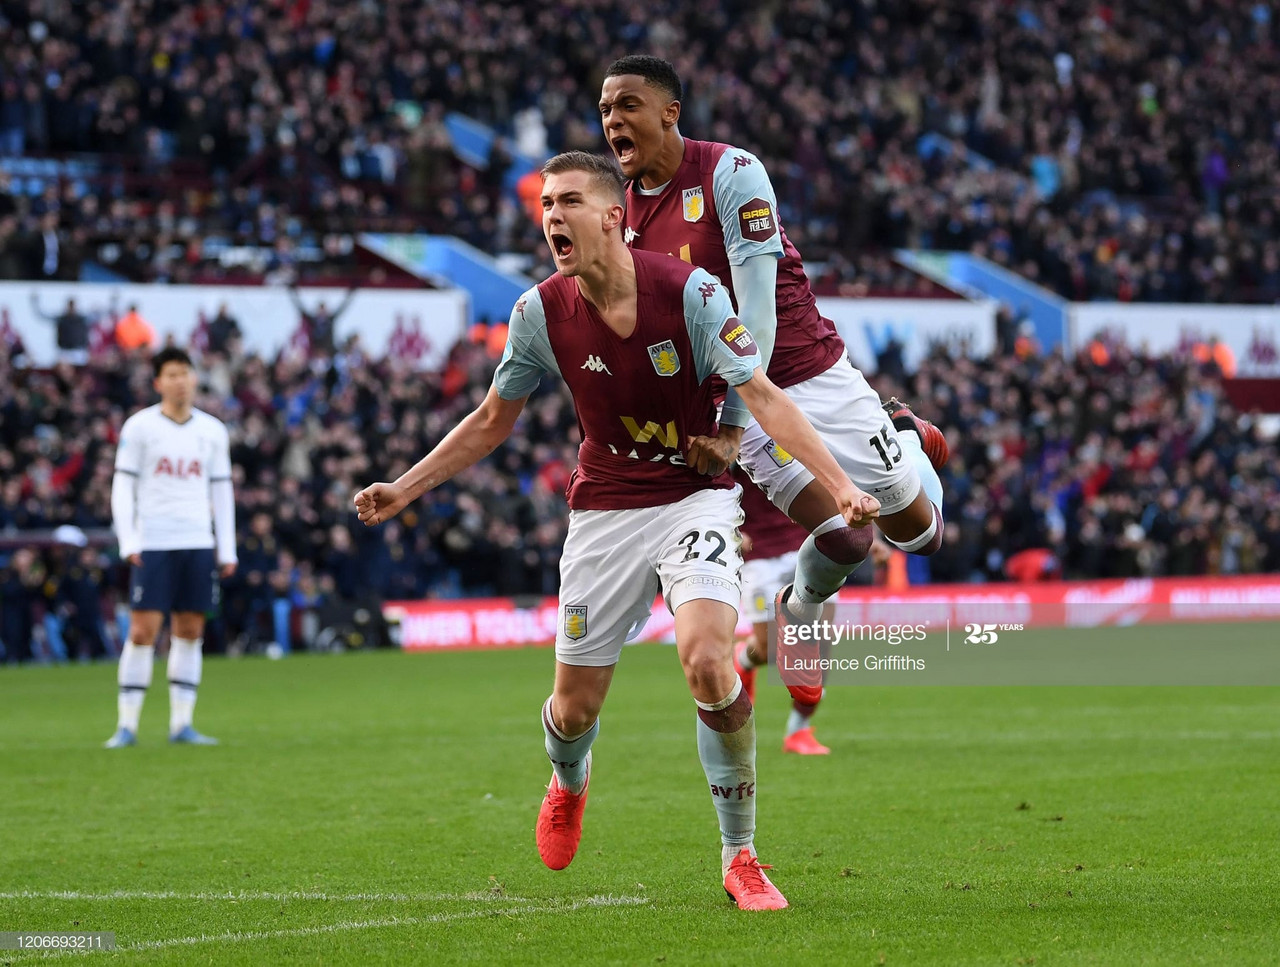 Aston Villa v Sheffield United Preview: Project Restart kicks off at Villa Park